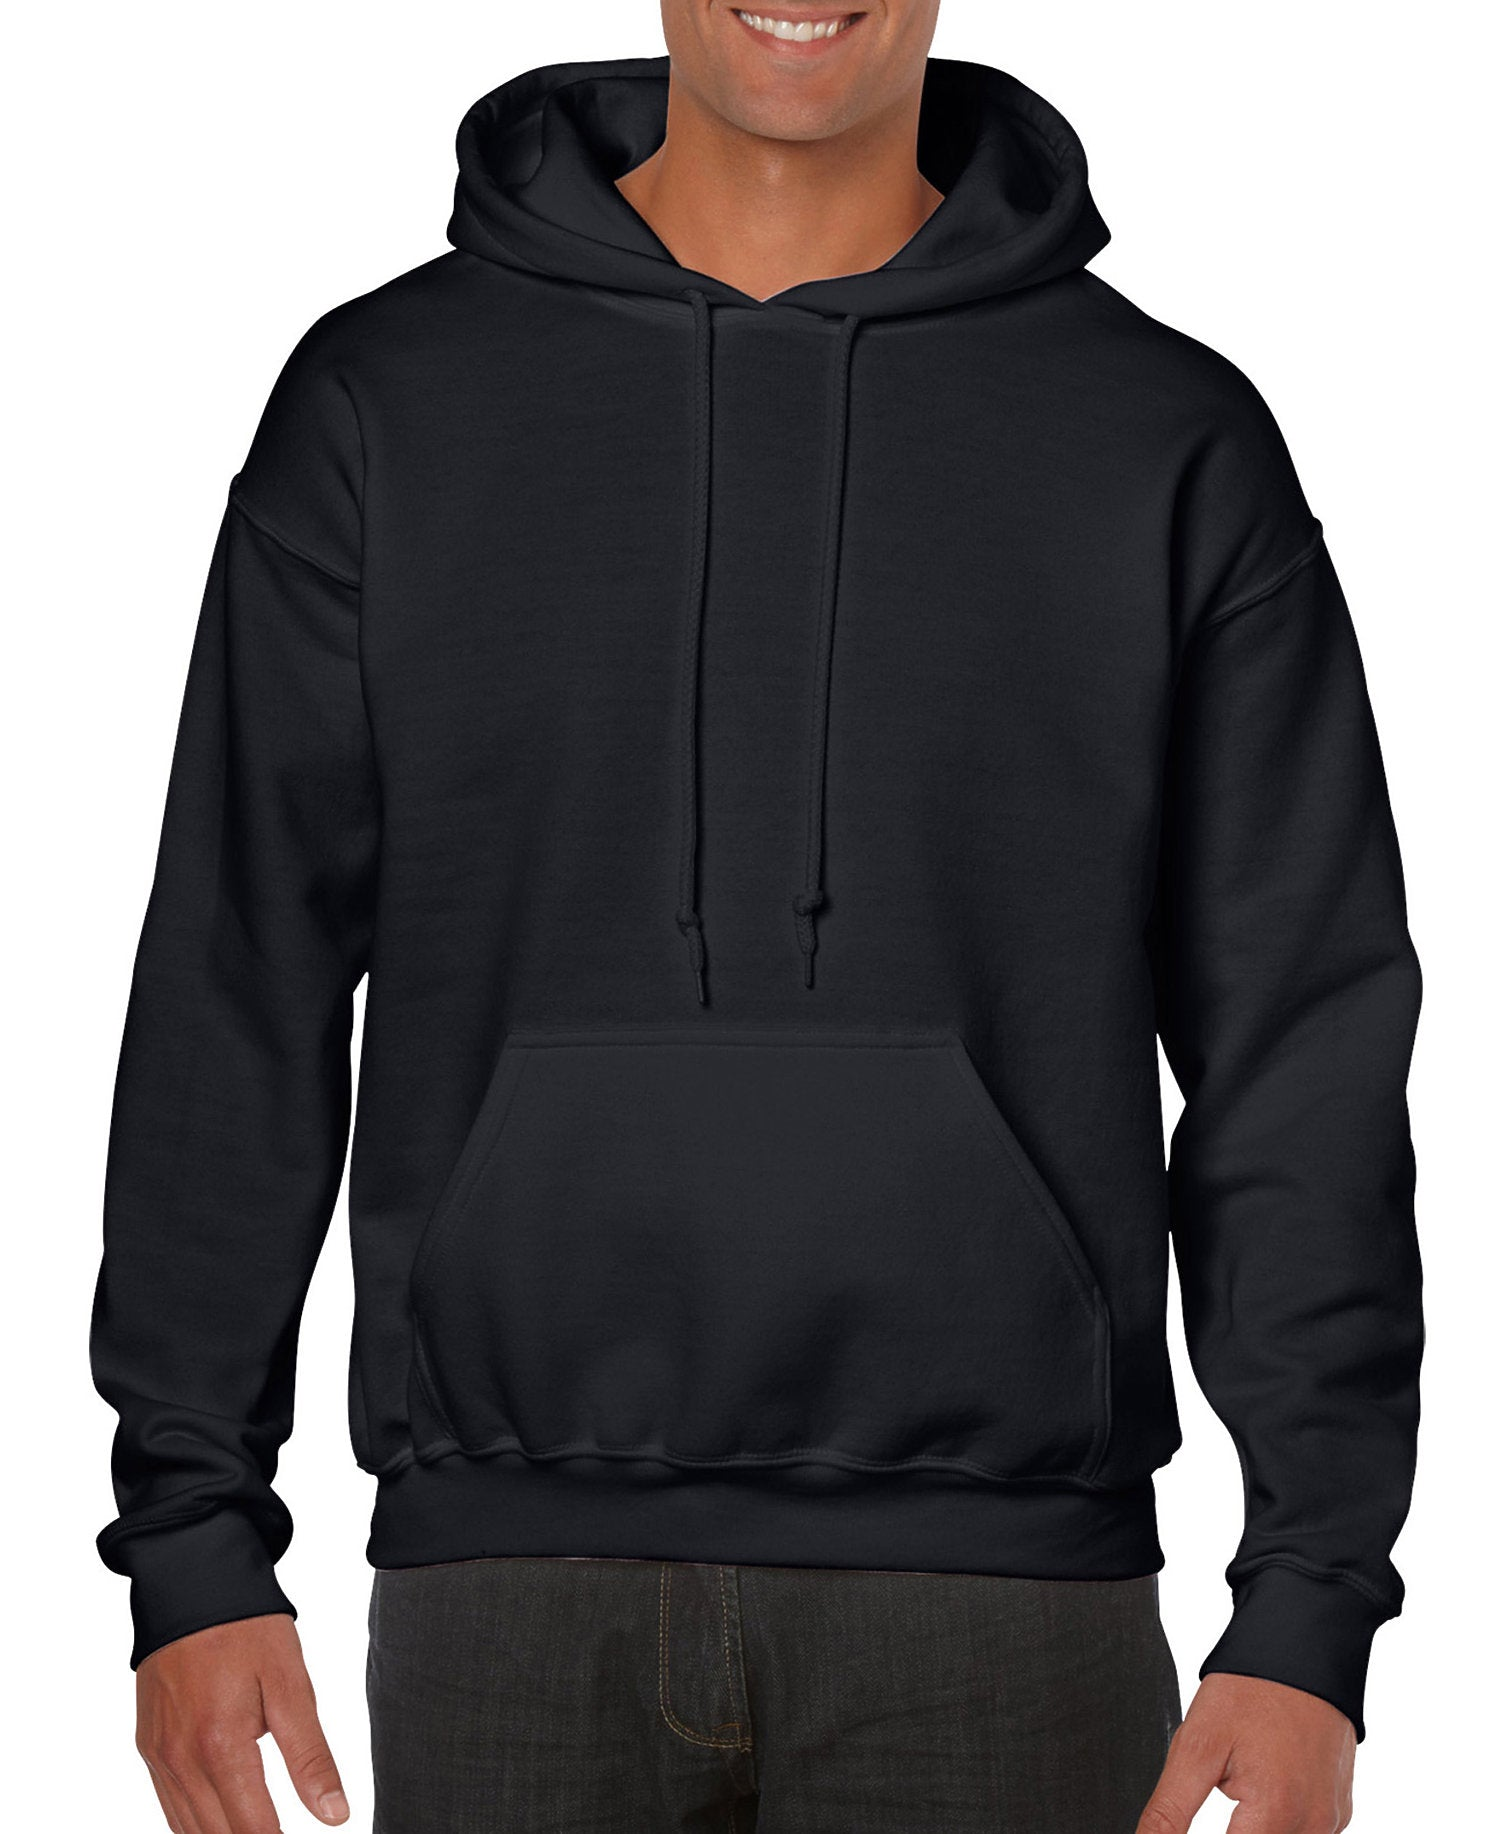 Gildan G18500 Heavy Blend Adult Hooded Sweatshirt M 1 Charcoal 1 Dark Heather